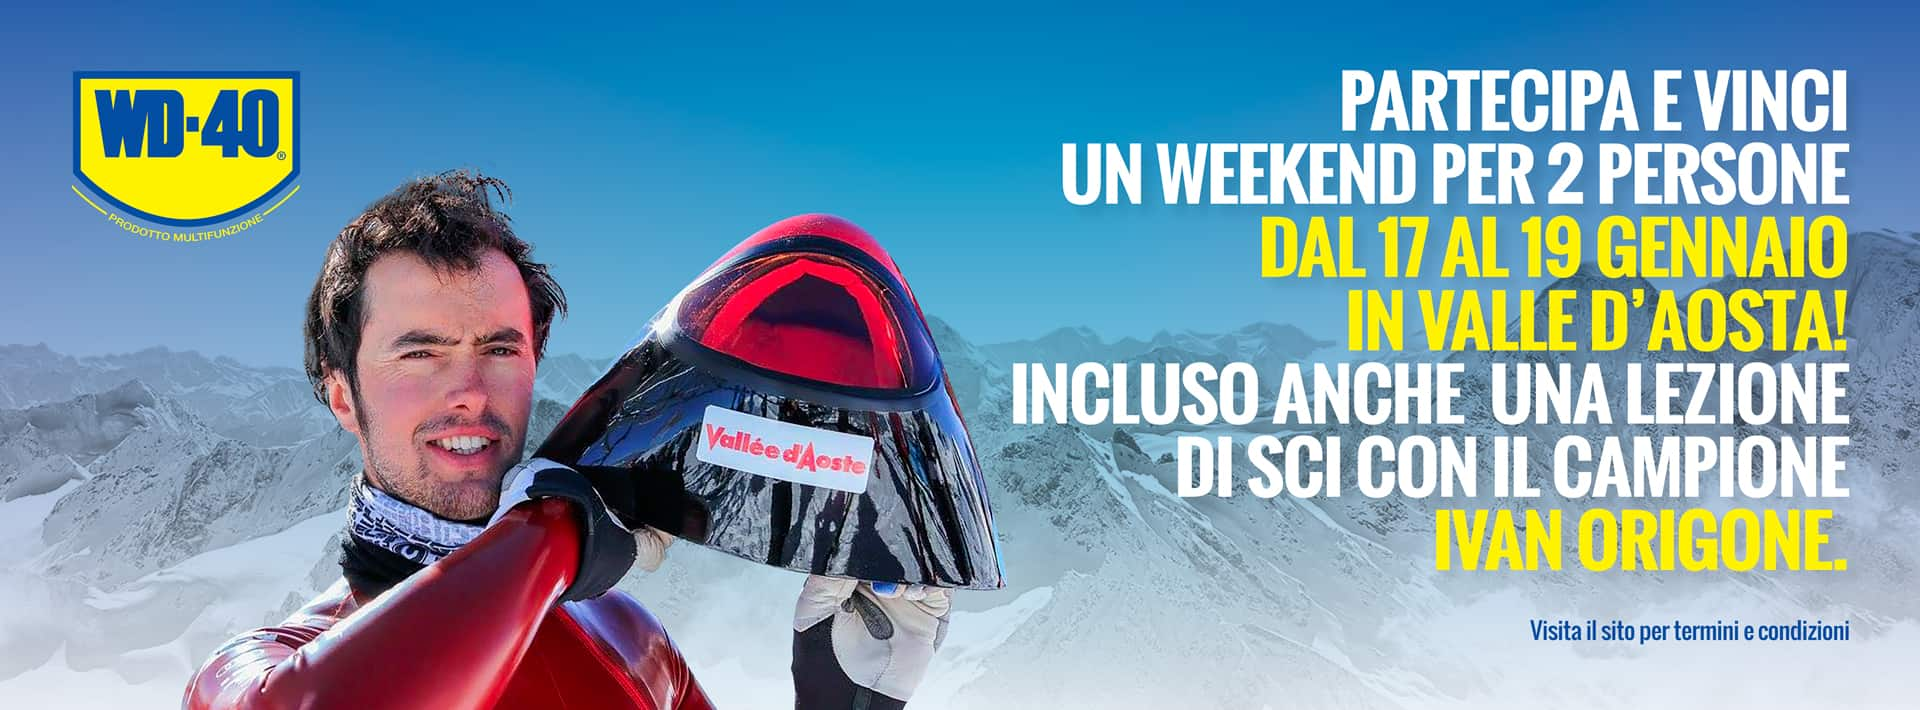 week end alta quota